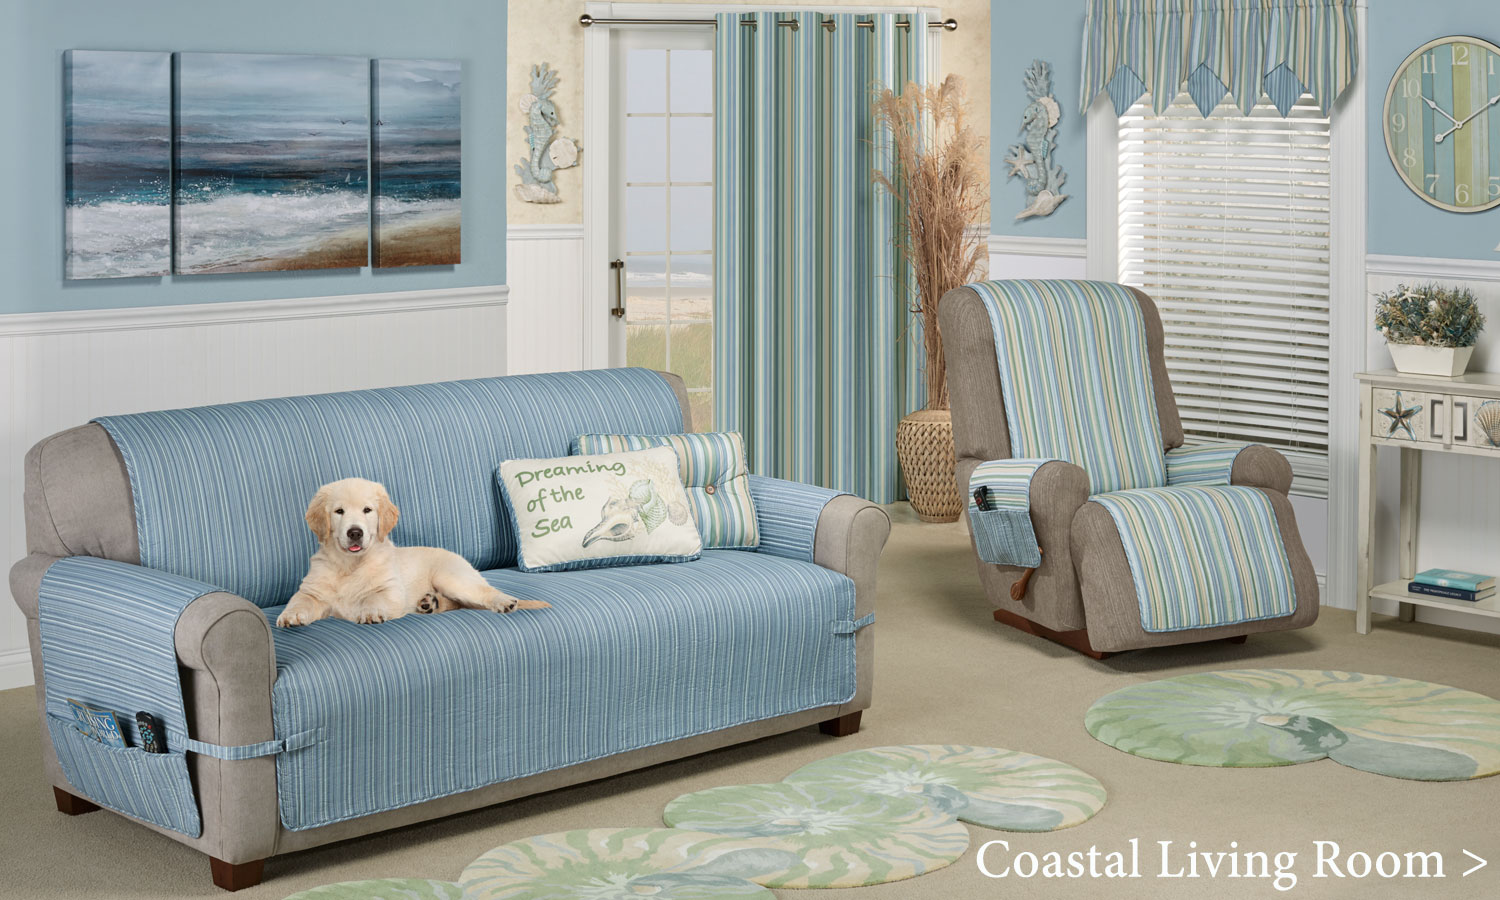 Coastal Style Decorating And Coastal Home Decorating Tips Touch Of Class